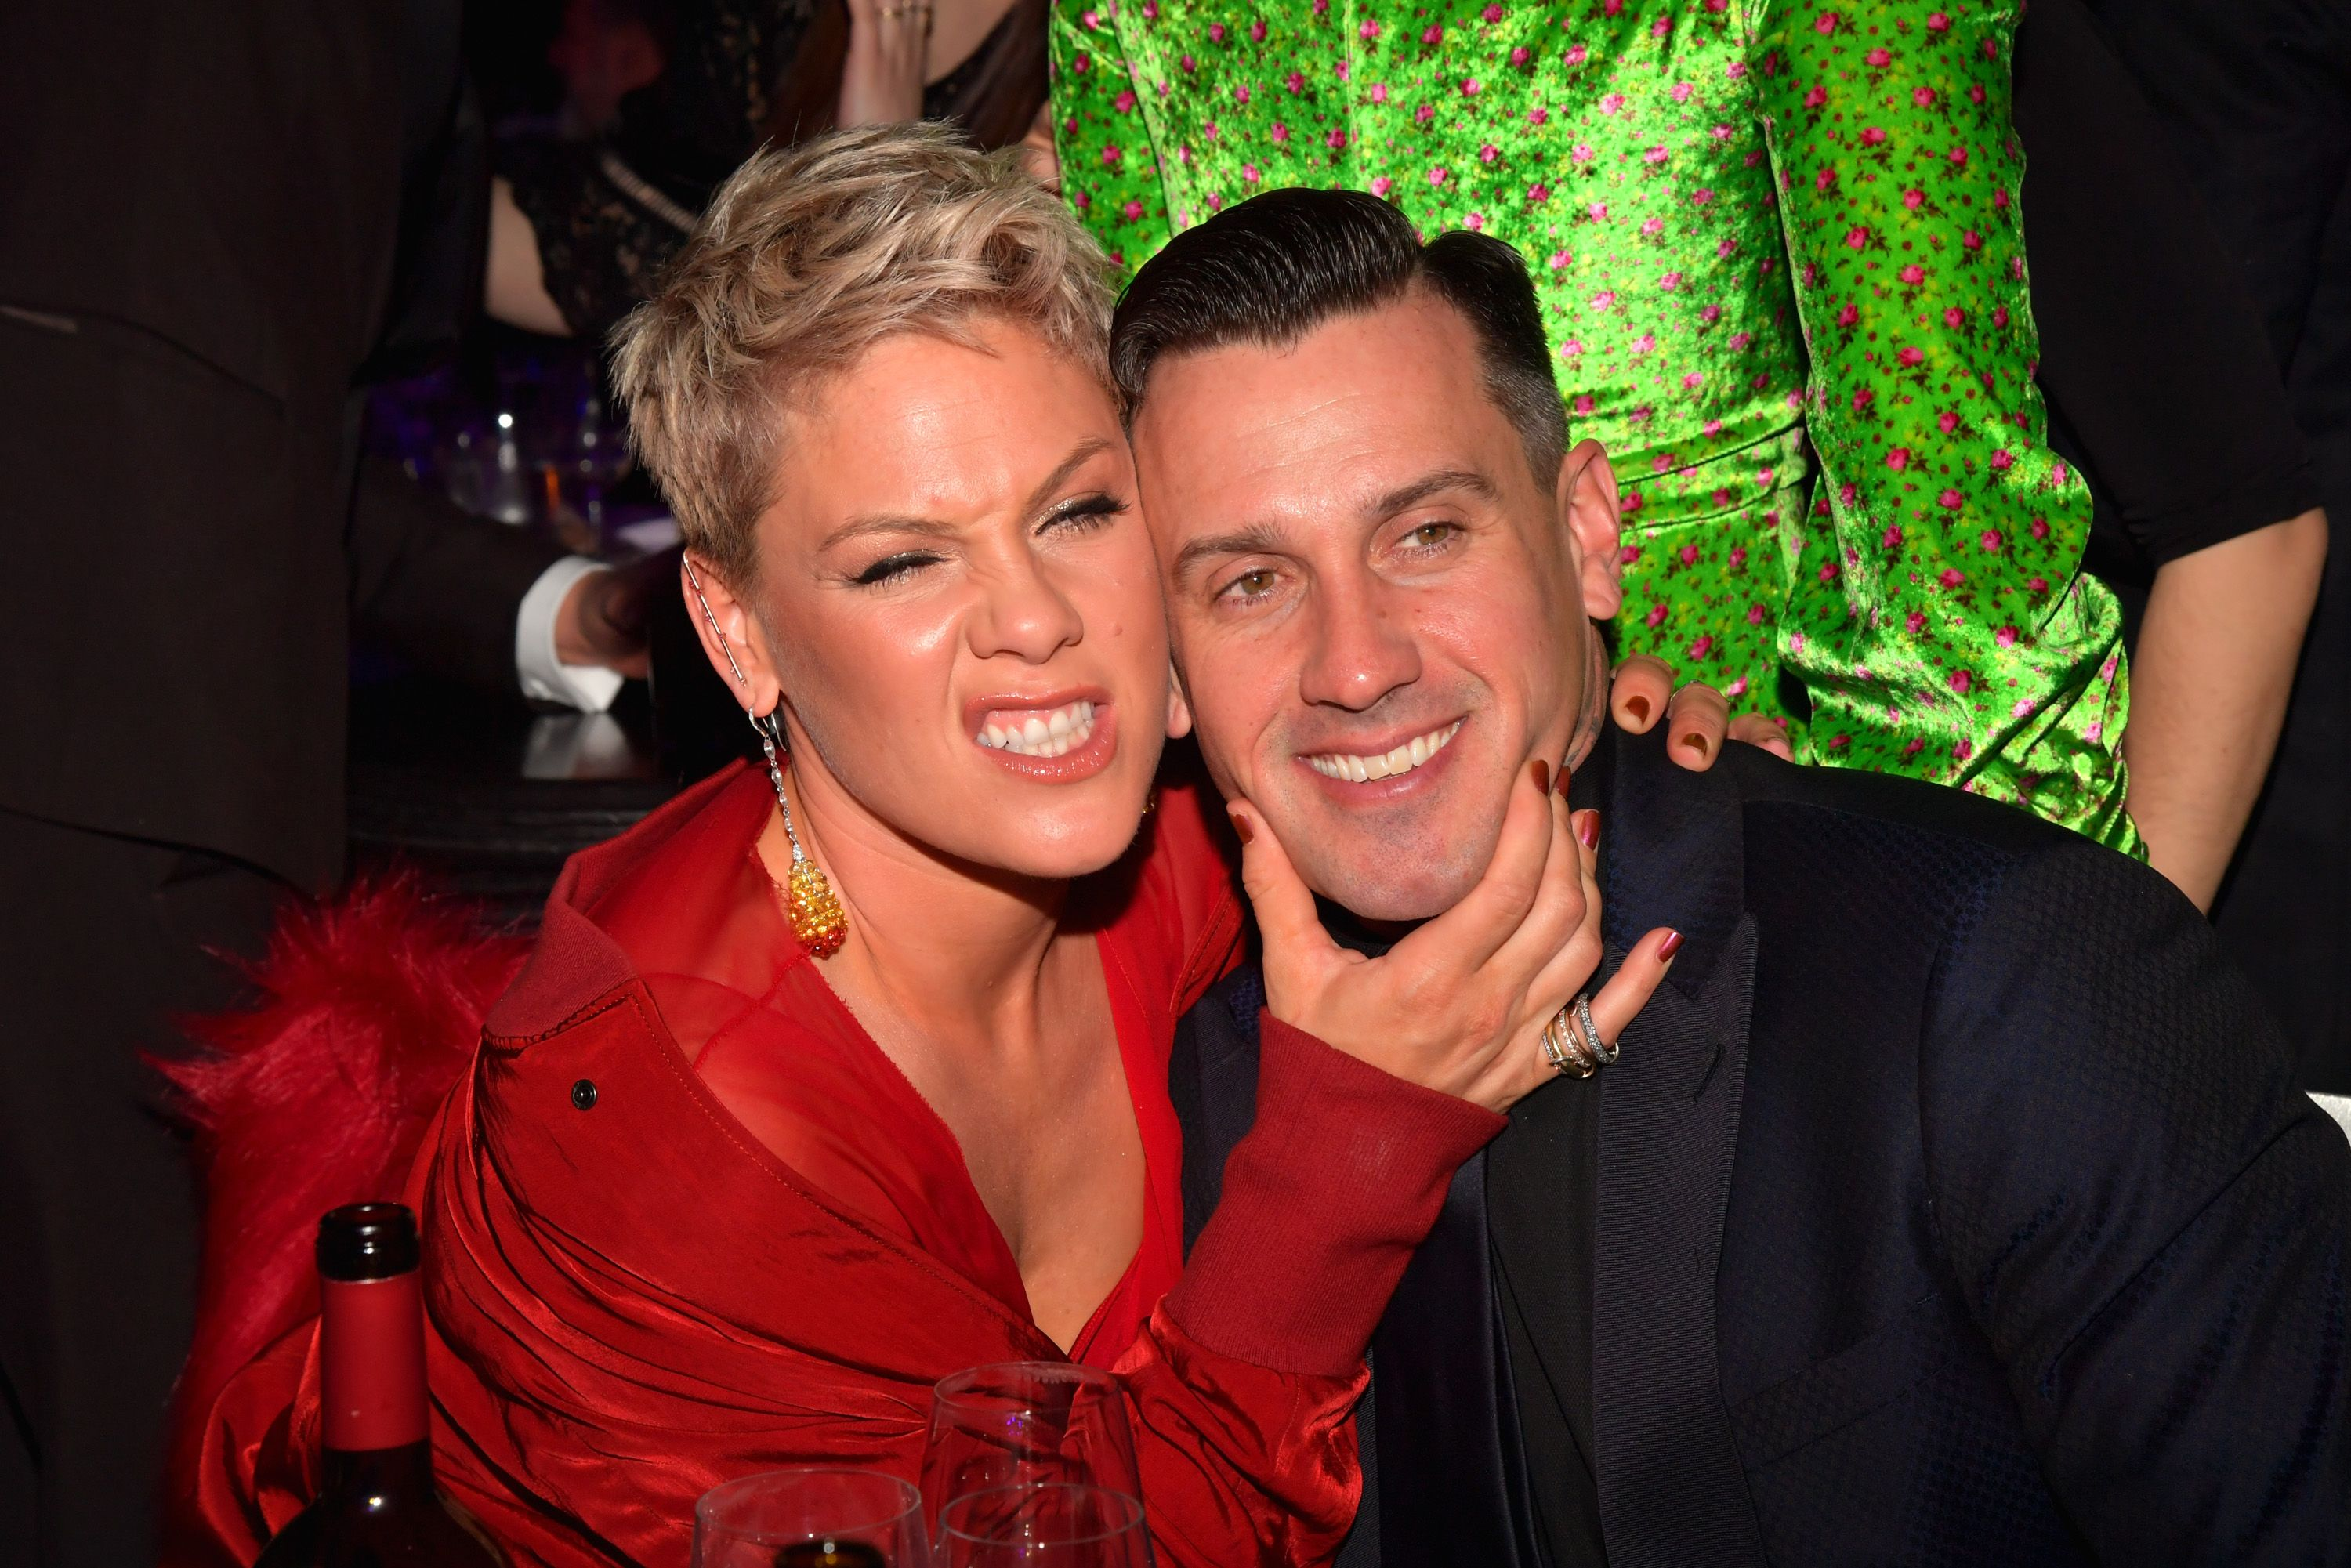 Pink and Carey Hart on January 27, 2018 in New York City. | Photo: Getty Images